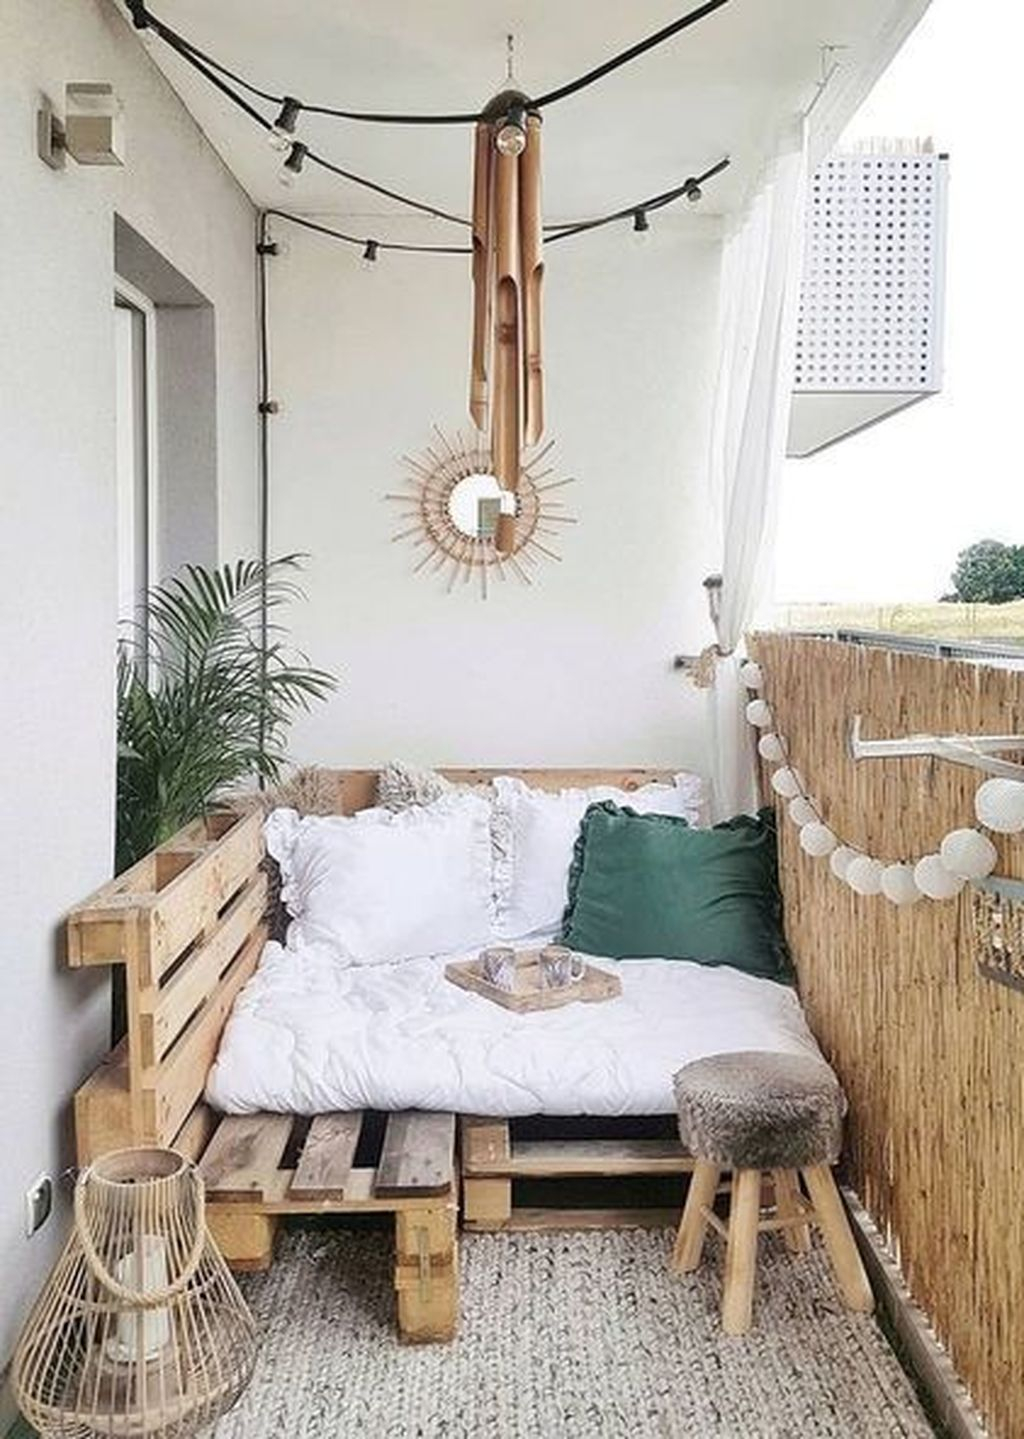 Enchanting Balcony Decoration Ideas For Apartment For A Cleaner Look 23